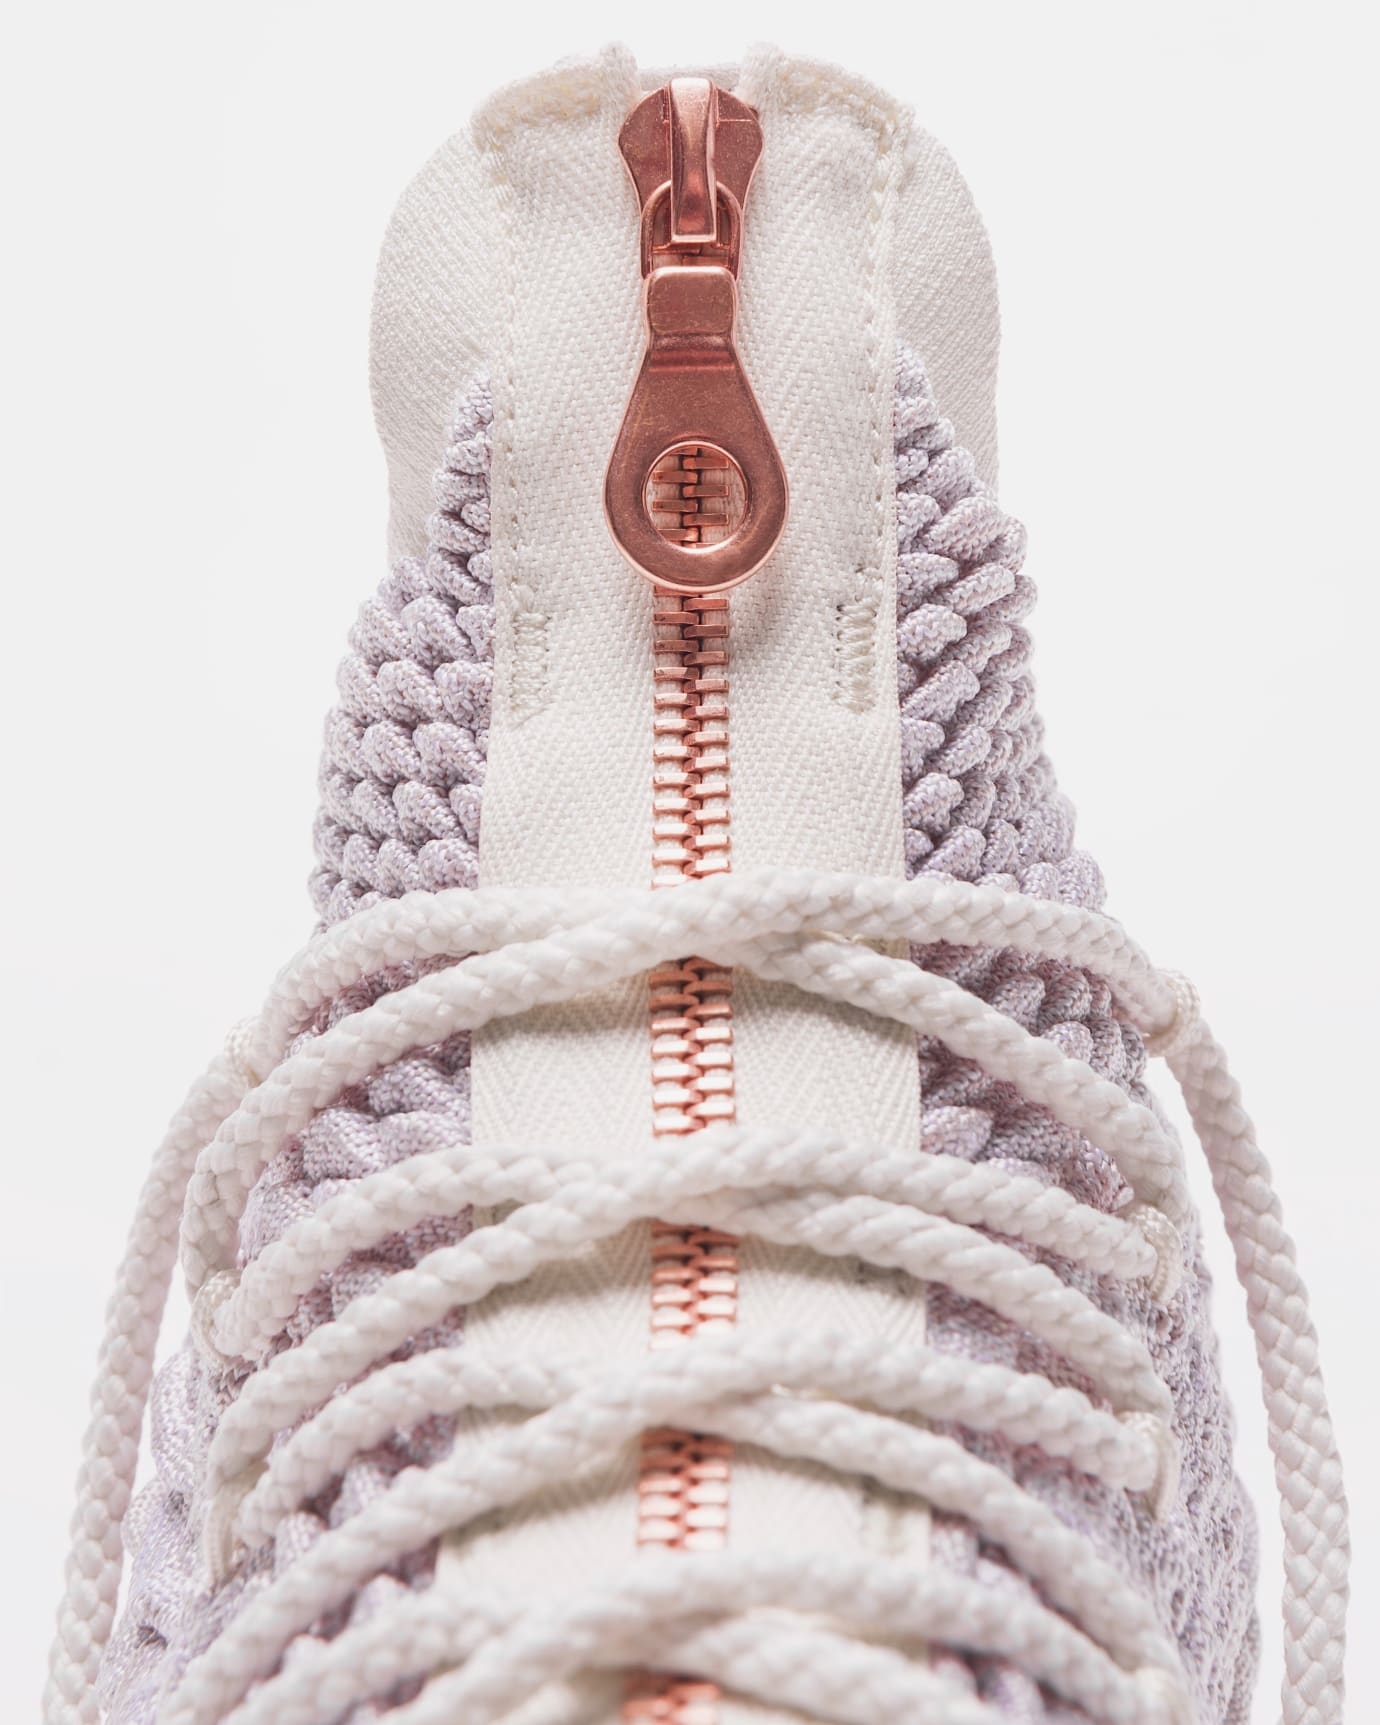 the best attitude d207a 85126 Ronnie Fieg Nike LeBron 15 Kith | Sole Collector